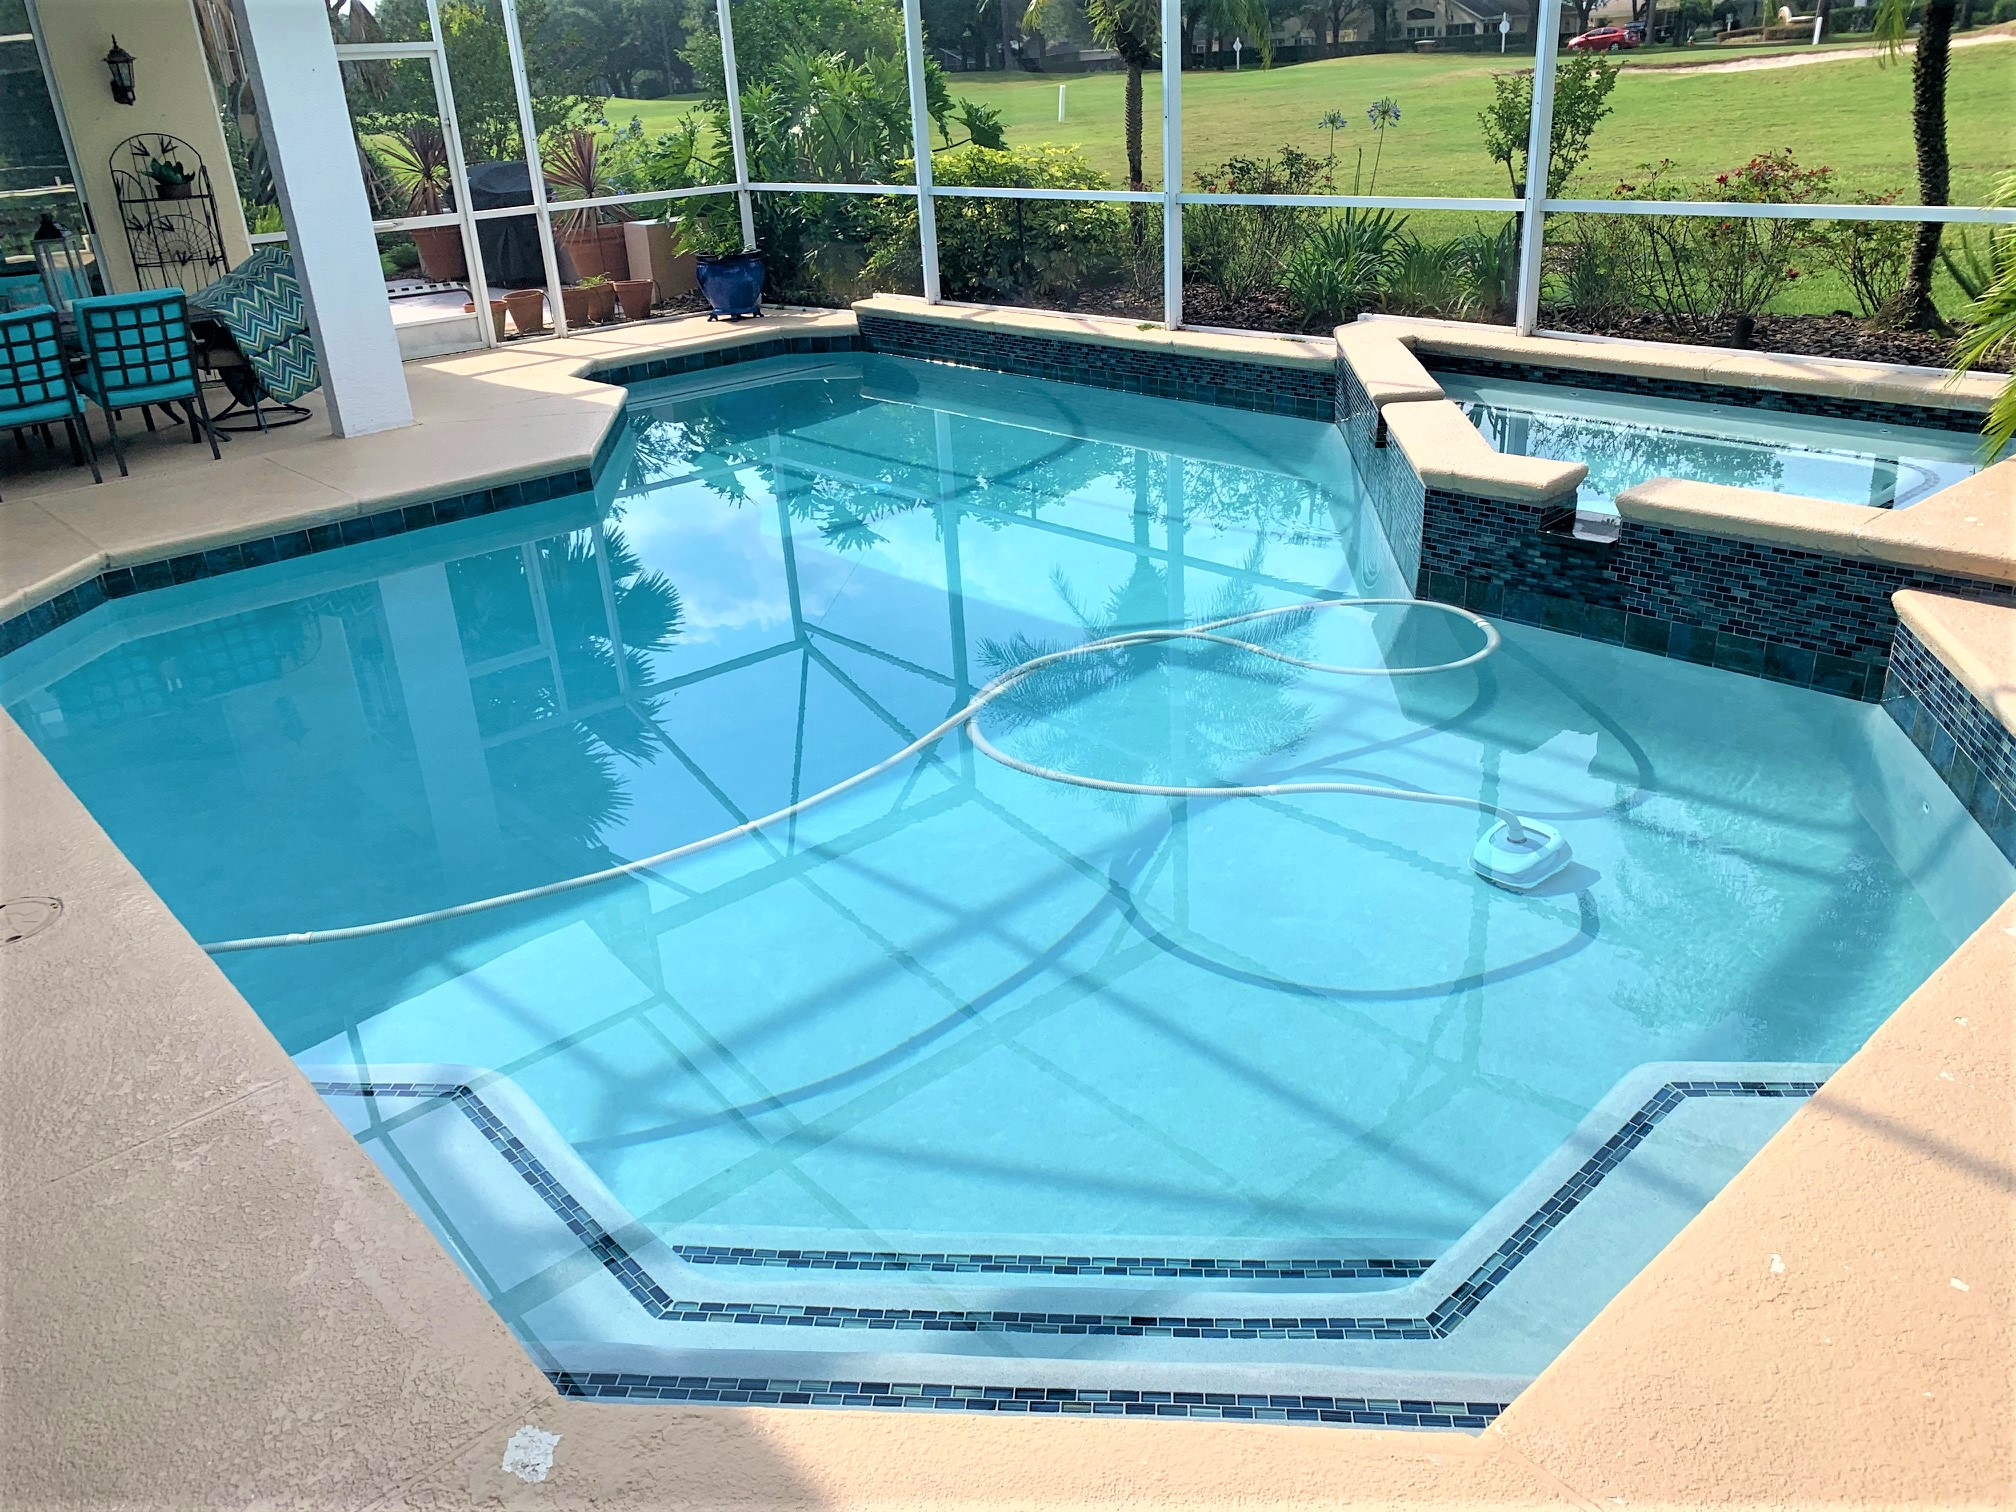 Pool Services And Remodeling Clements Pool Services Remodeling